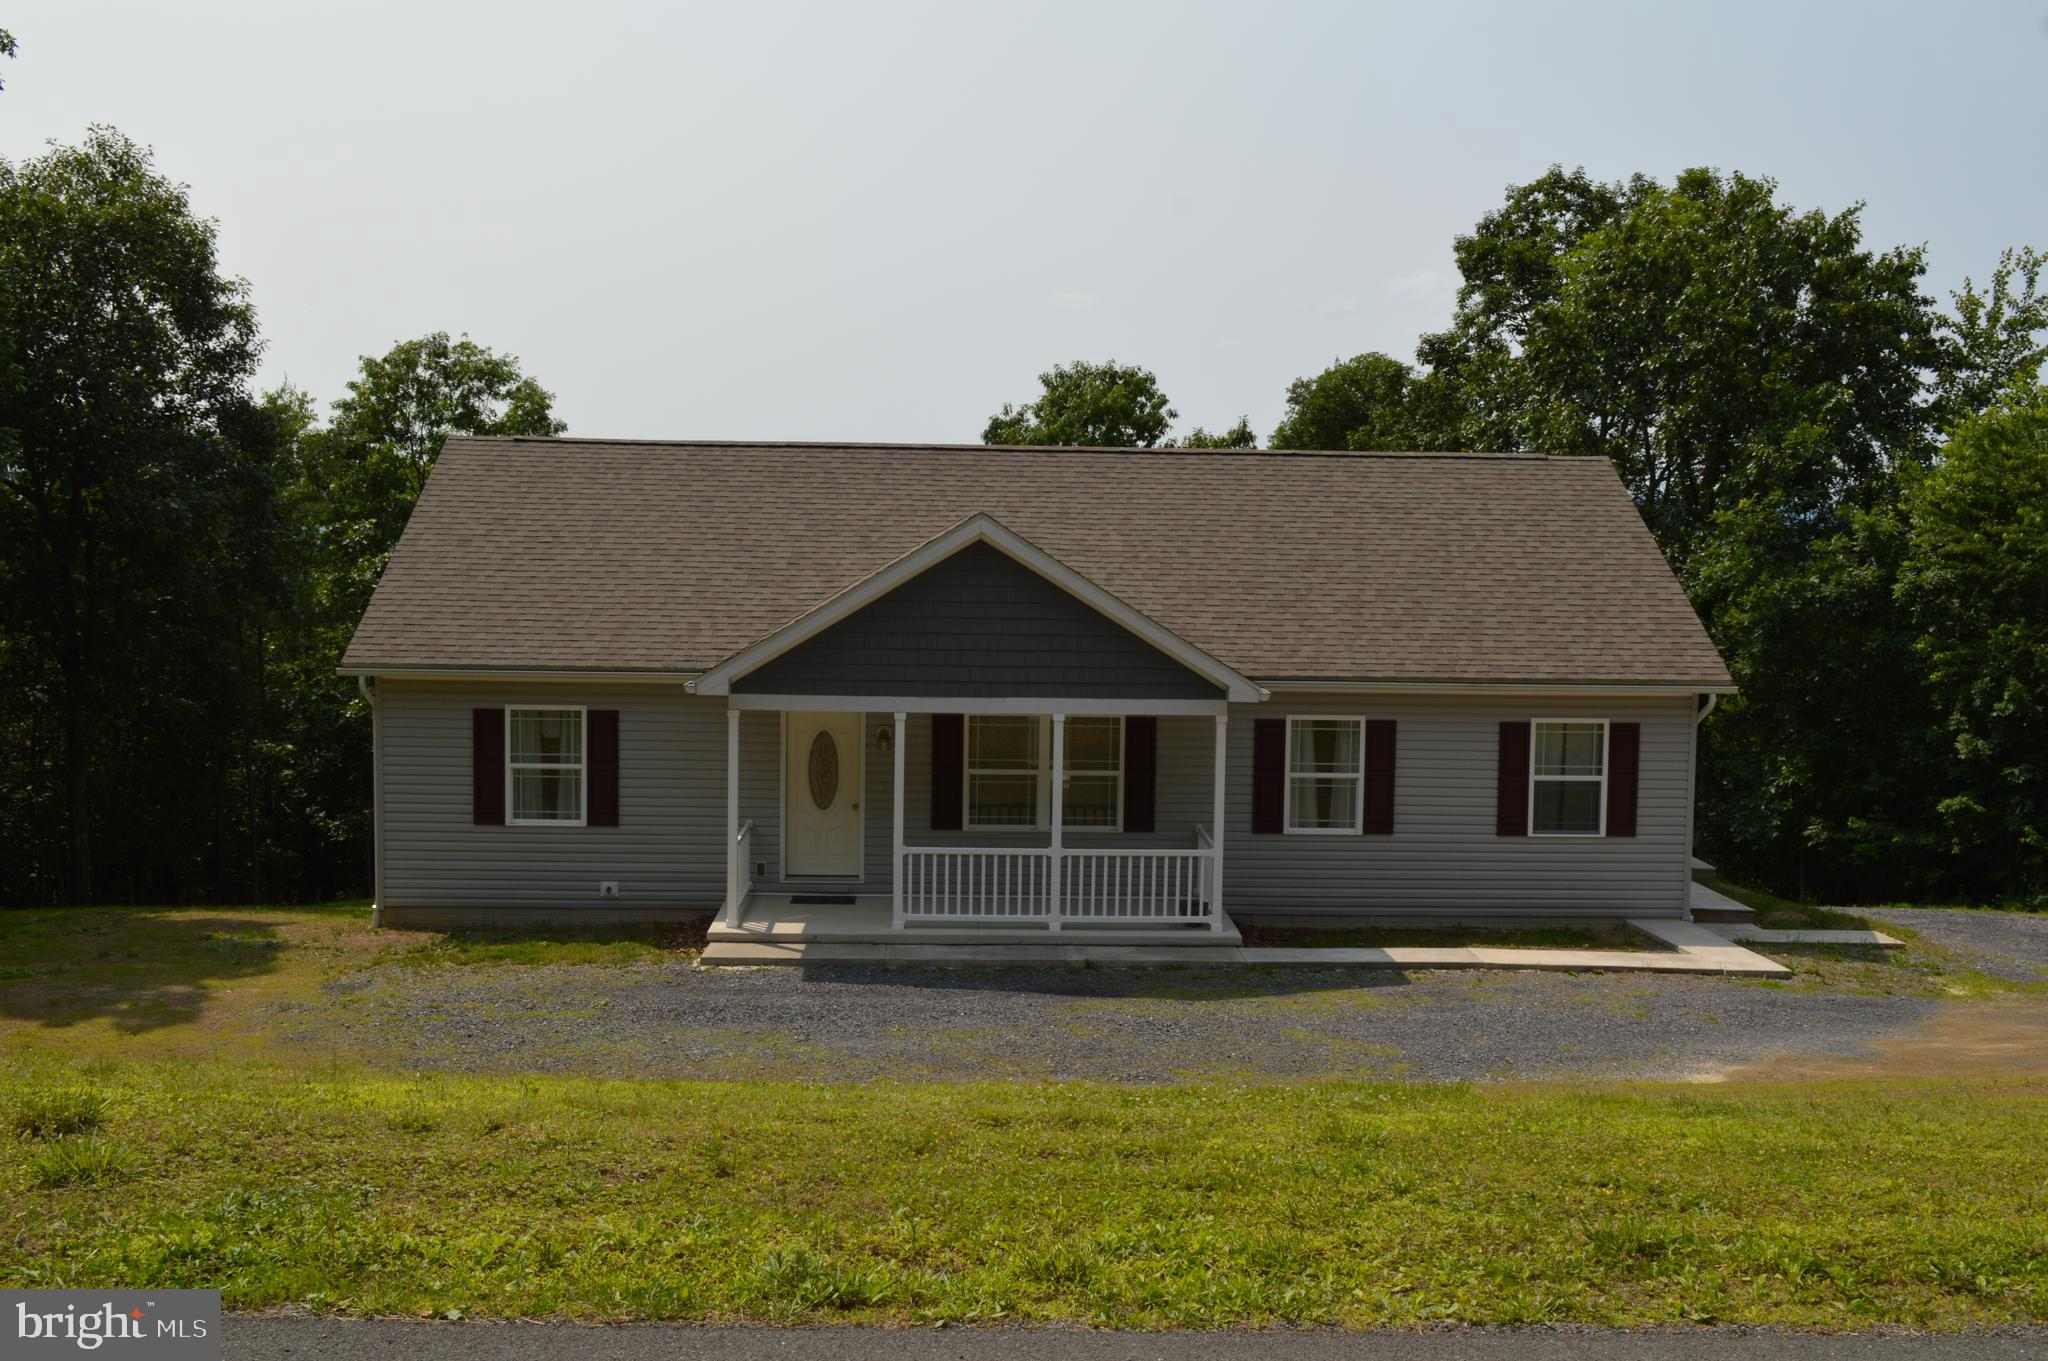 2436 DONALDSON LOOP ROAD, FORT ASHBY, WV 26719